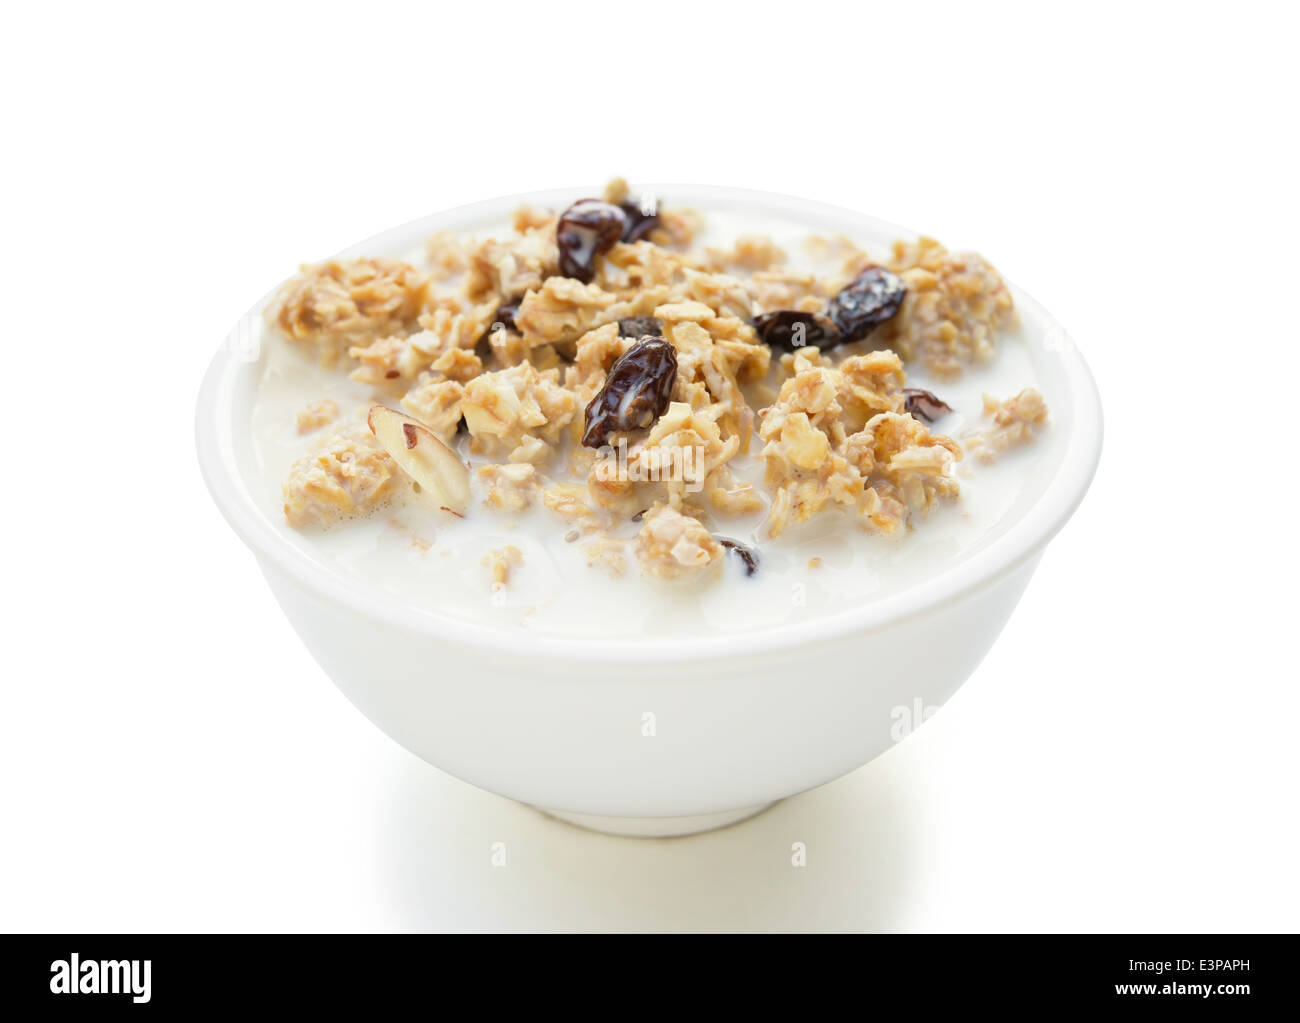 delicious and healthy wholegrain muesli with clipping path Stock Photo